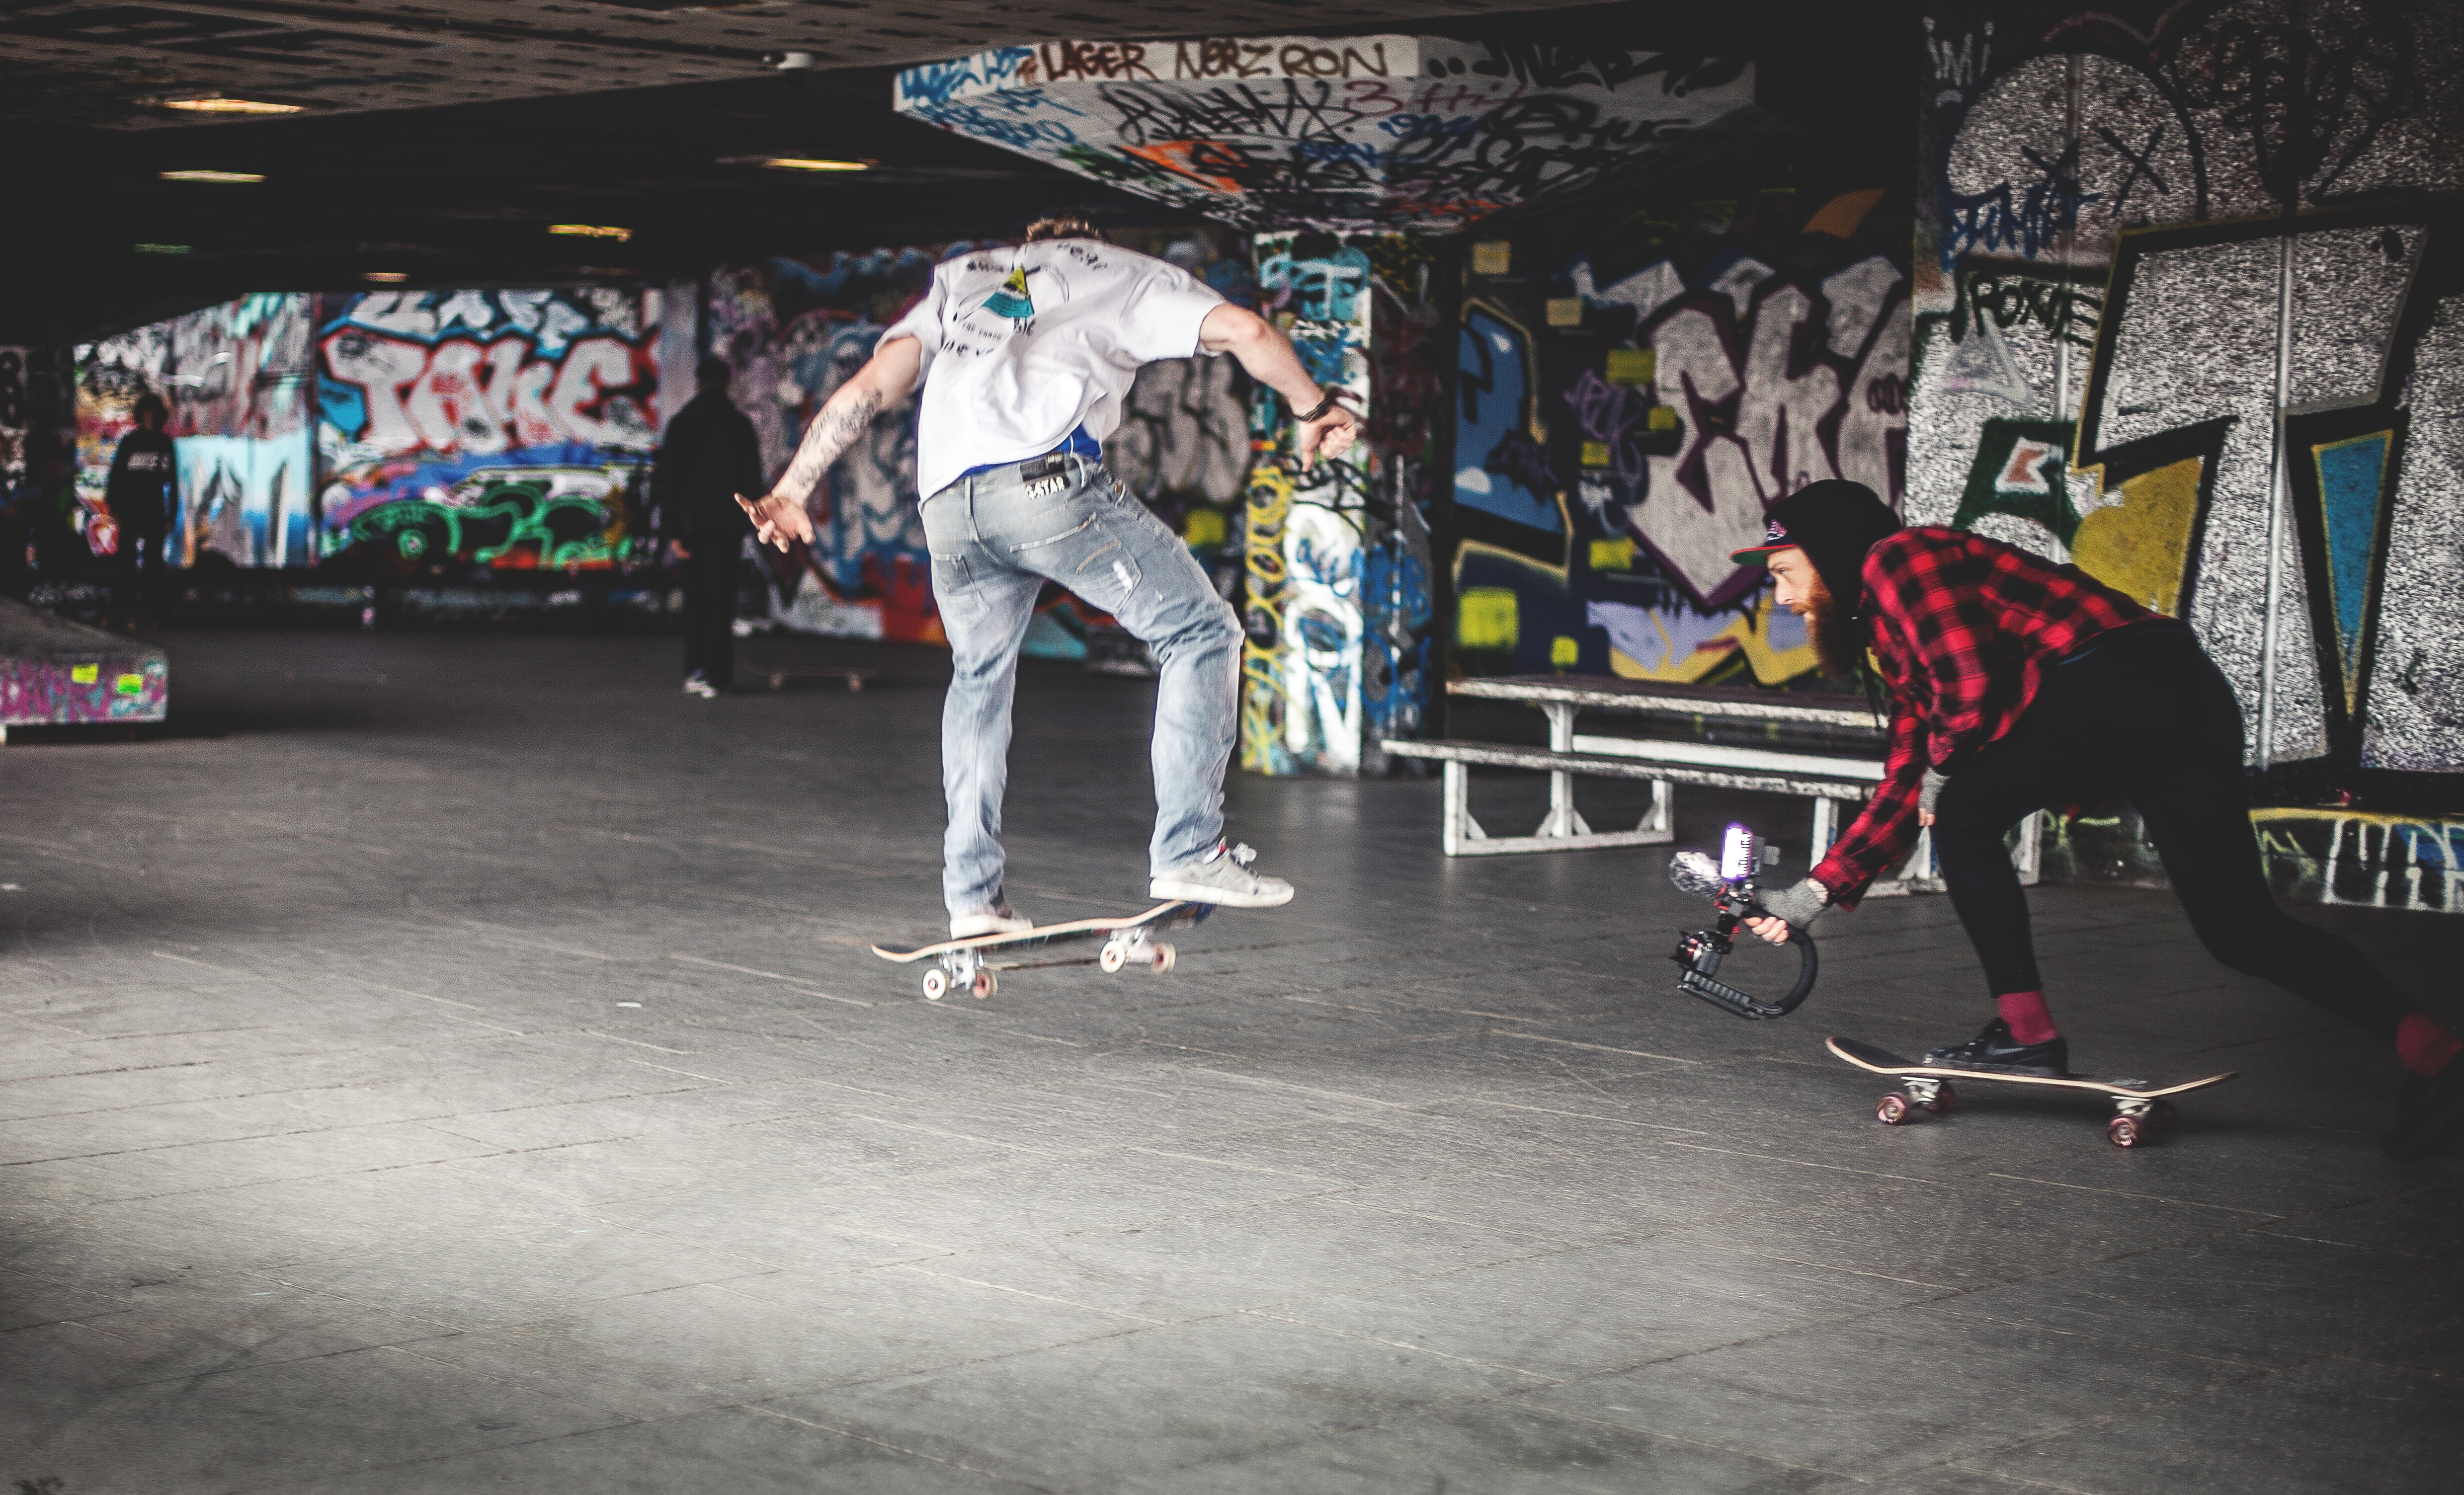 Skateboarders do tricks inside a skate park with graffiti art